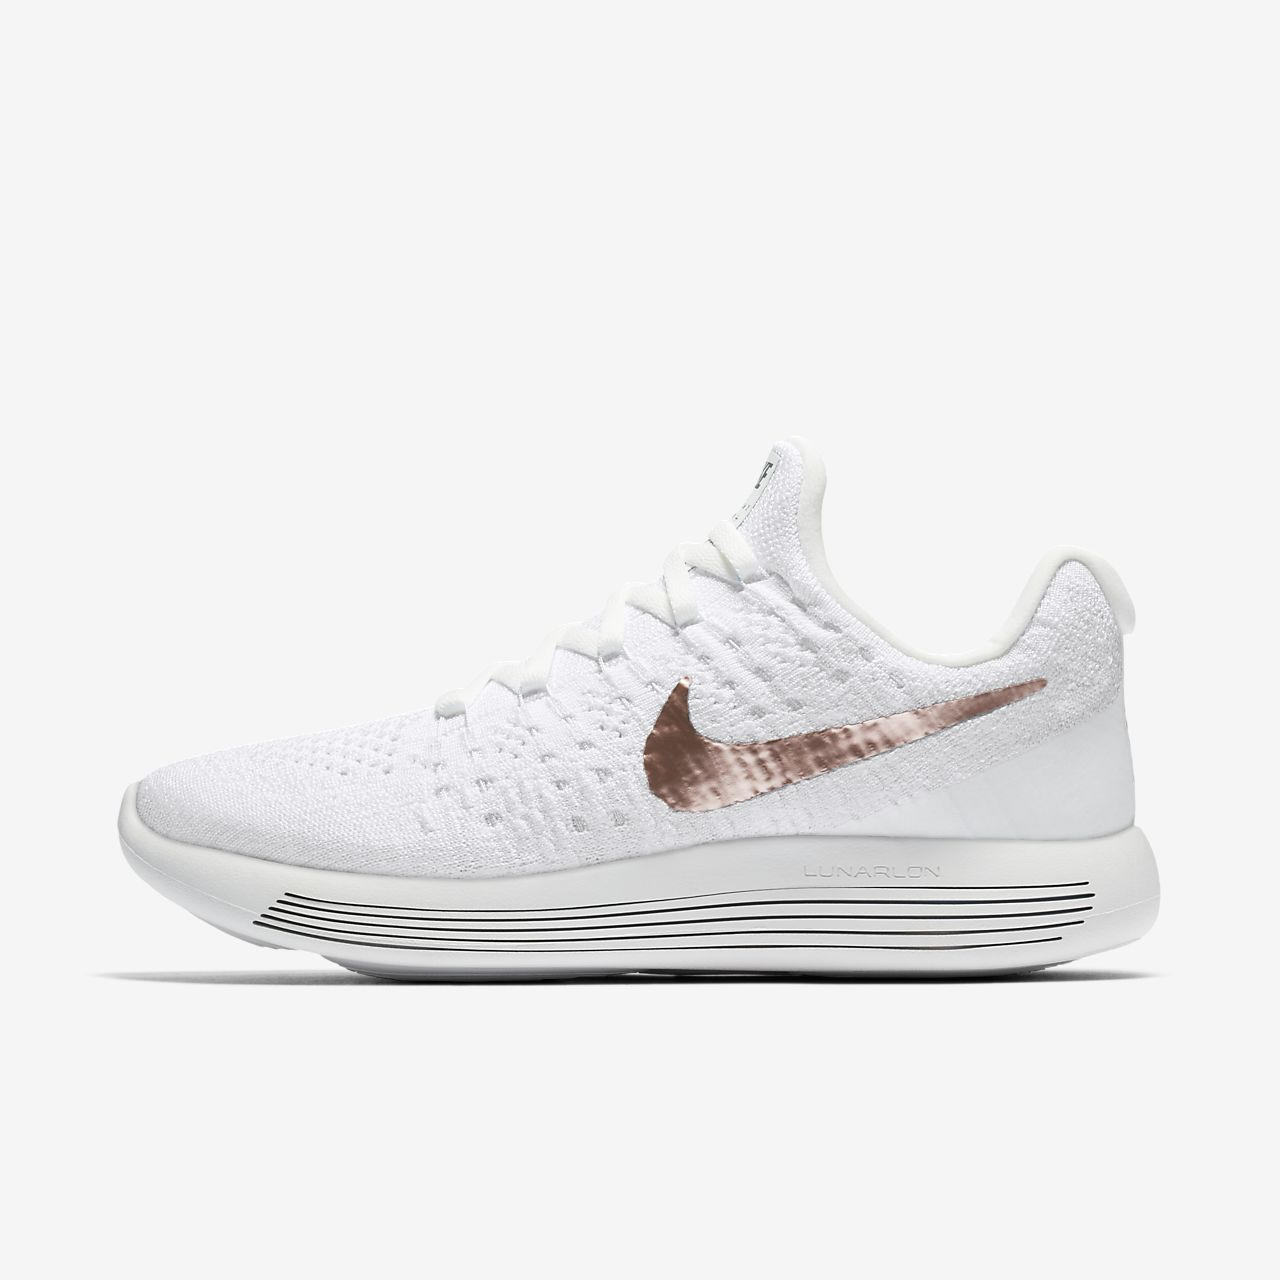 213a81b94f07 ... 863779 001 mens running shoes nib discount code for nike lunarepic low  flyknit 2 explorer womens running shoe 0d4a7 15877 ...